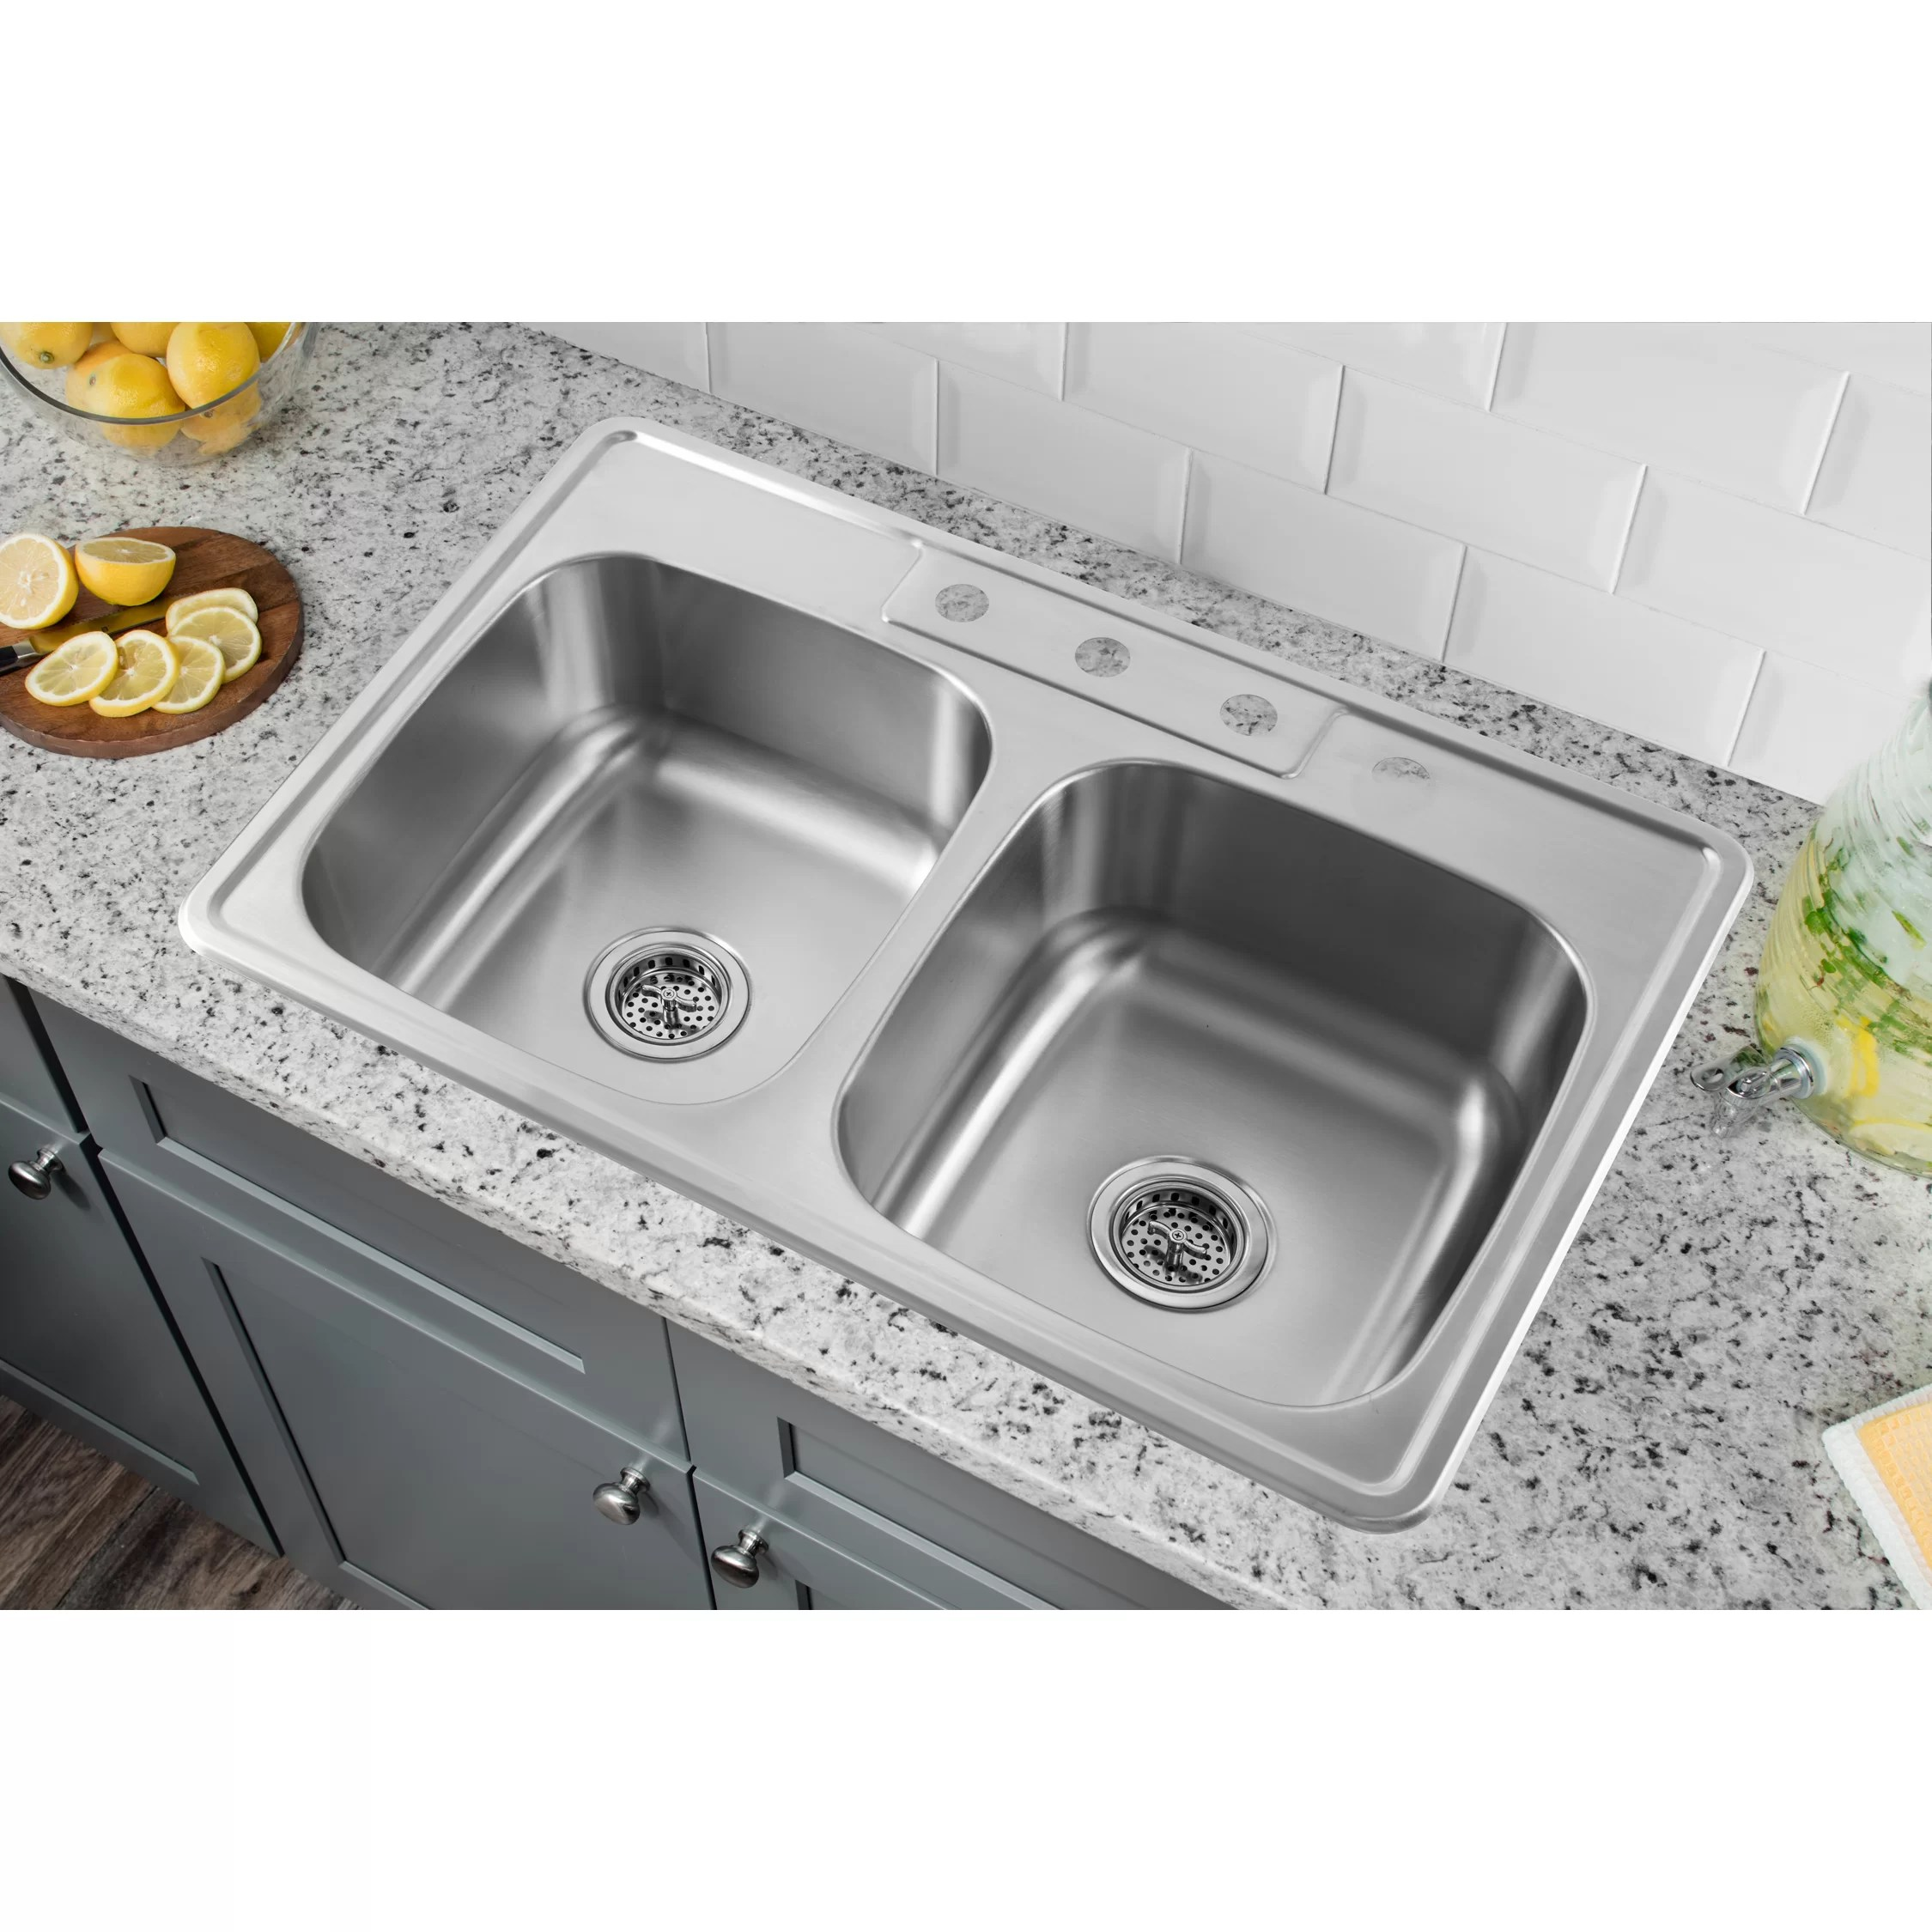 stainless steel kitchen sinks 33 x 22 compost bin for soleil quot drop in double bowl